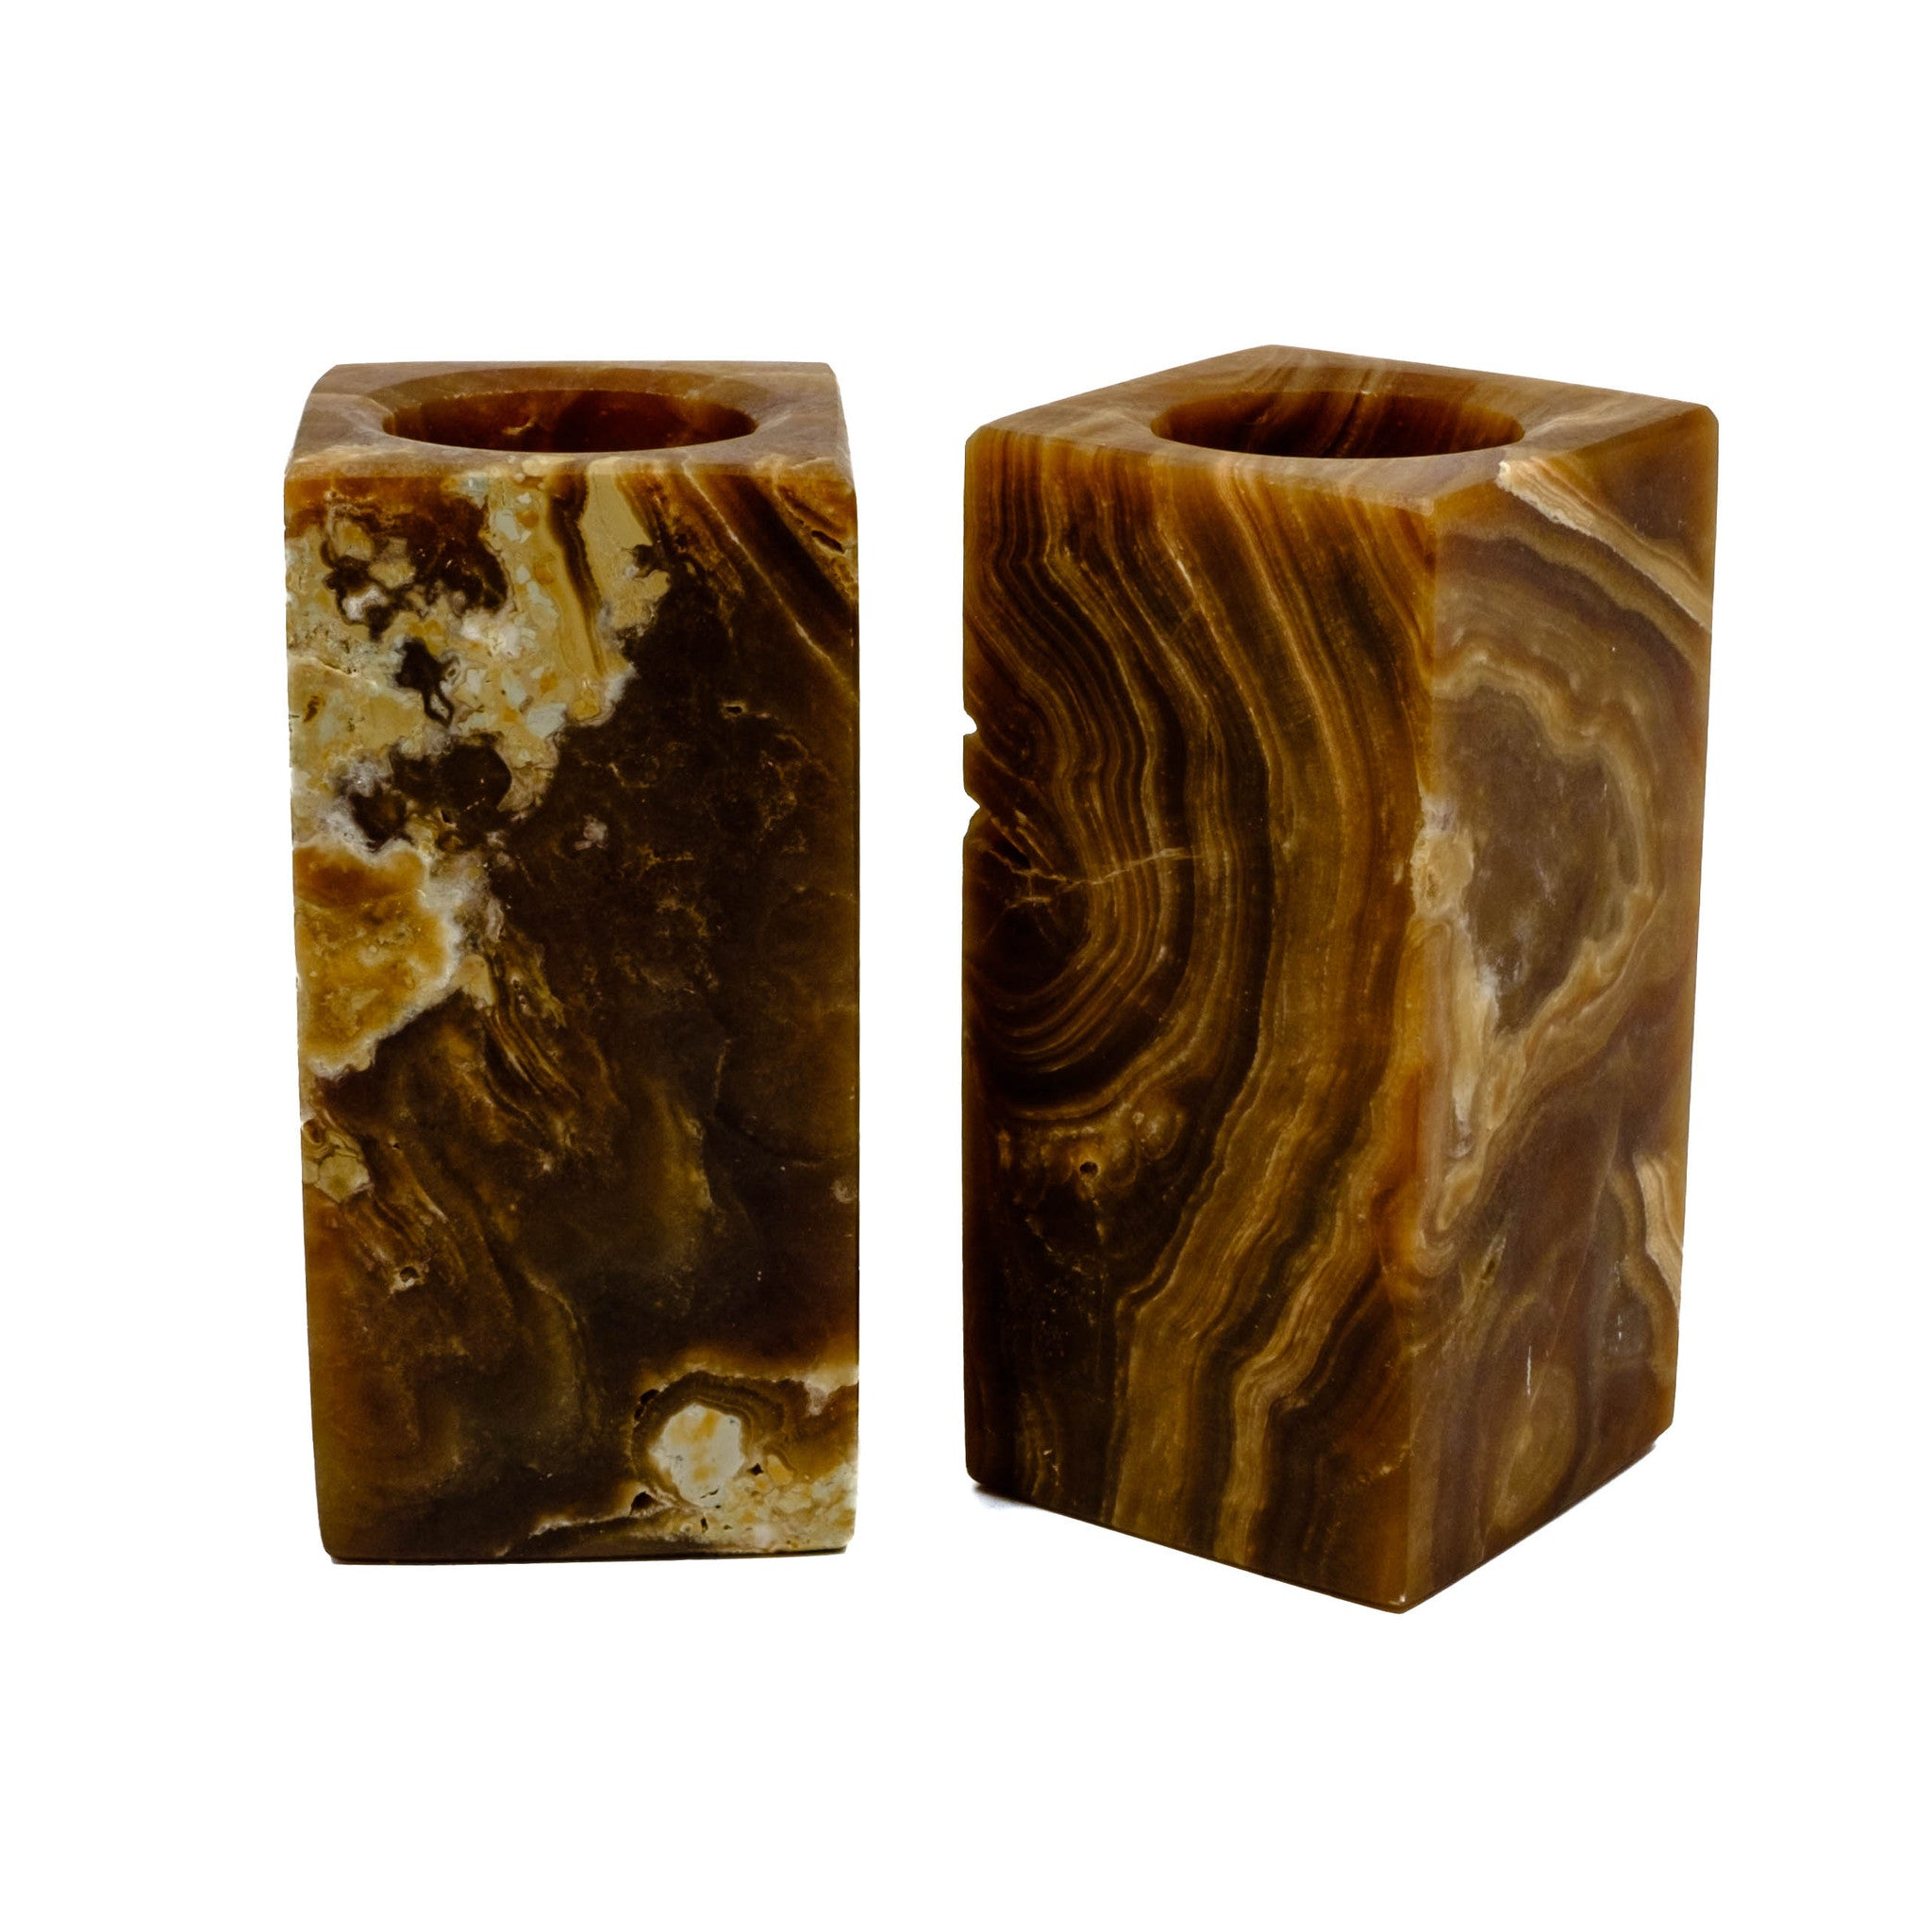 chocolate onyx vase or candle holder for your living room.